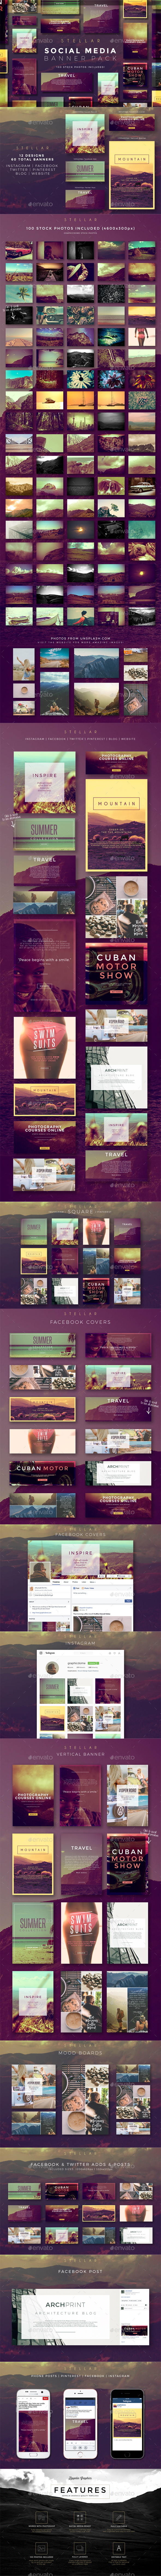 Stellar Social Media Banner Pack - Social Media Web Elements